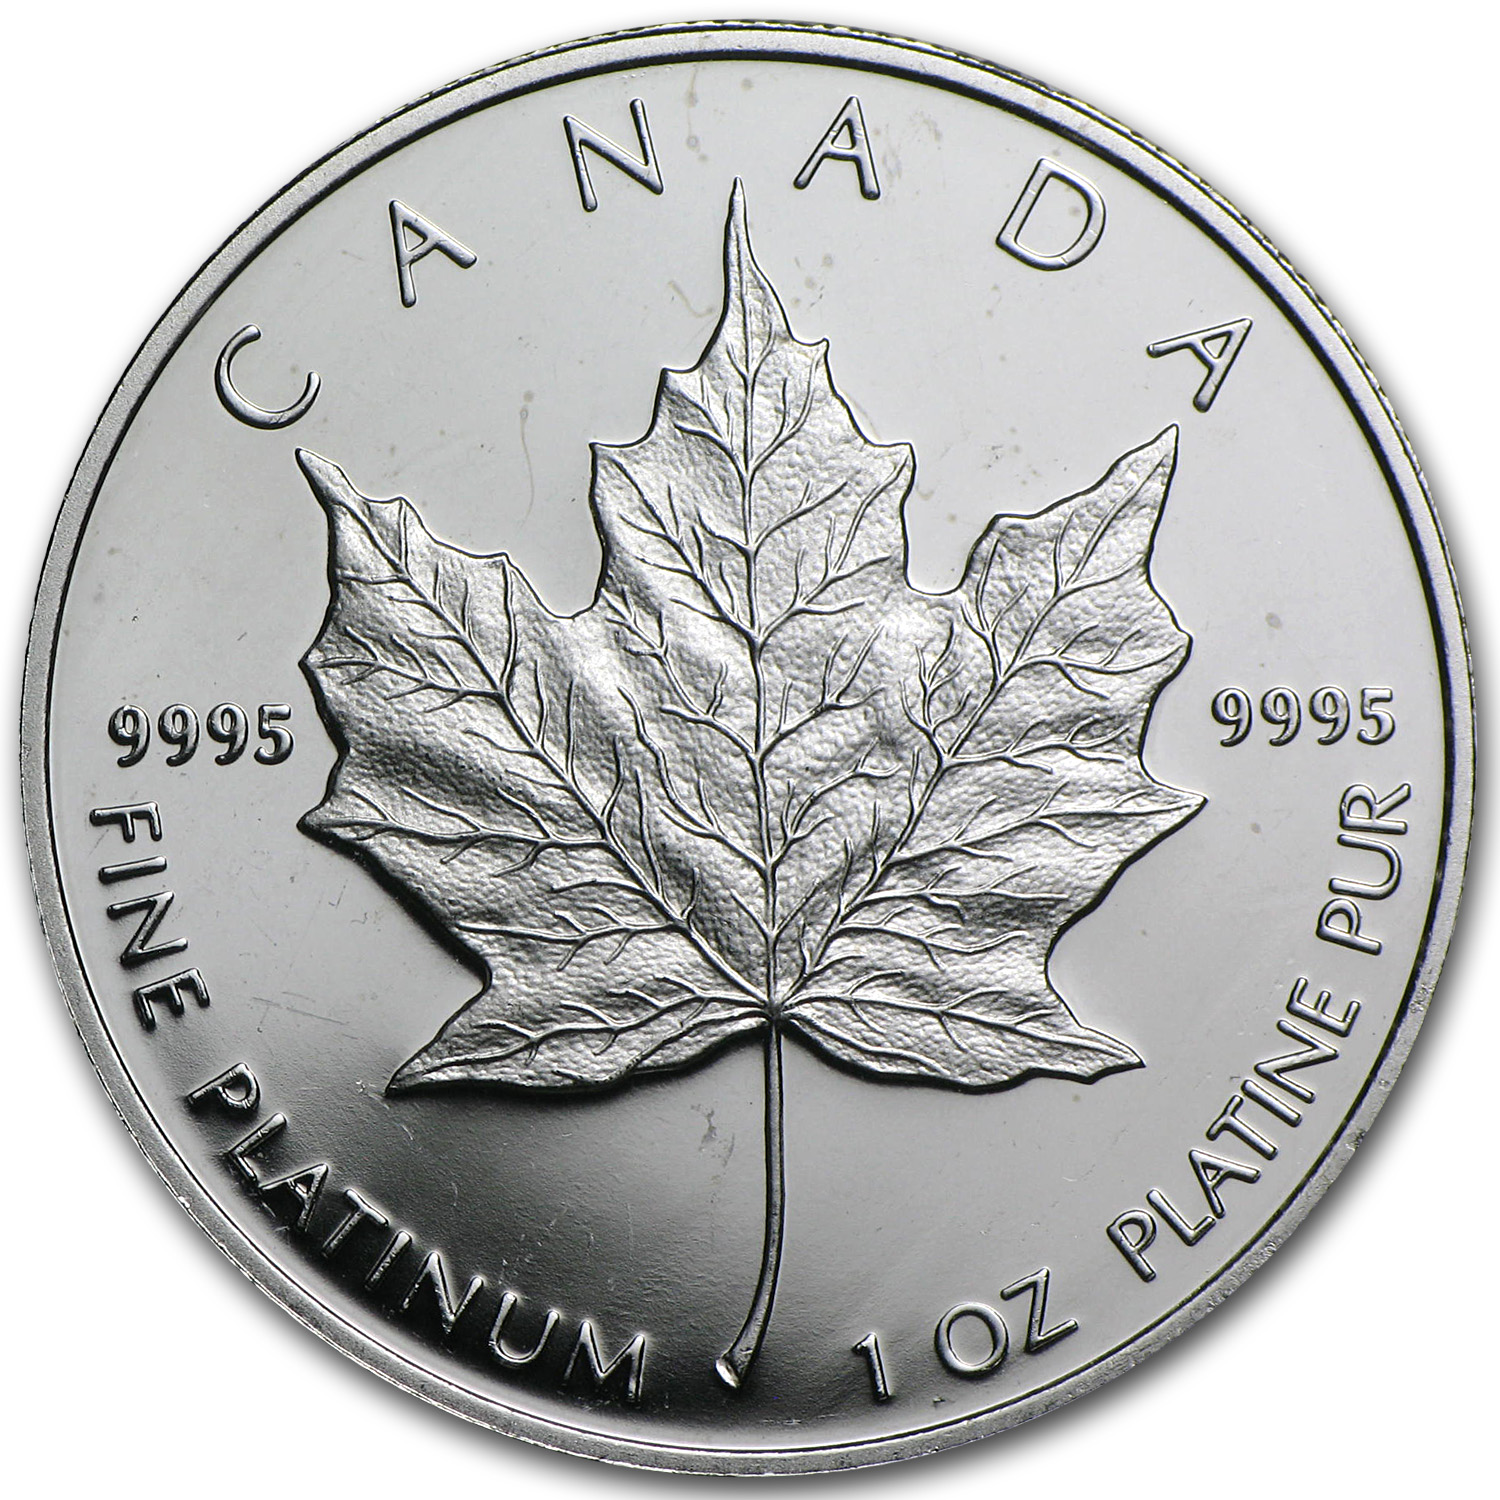 1989 Canada 1 oz Platinum Maple Leaf Proof